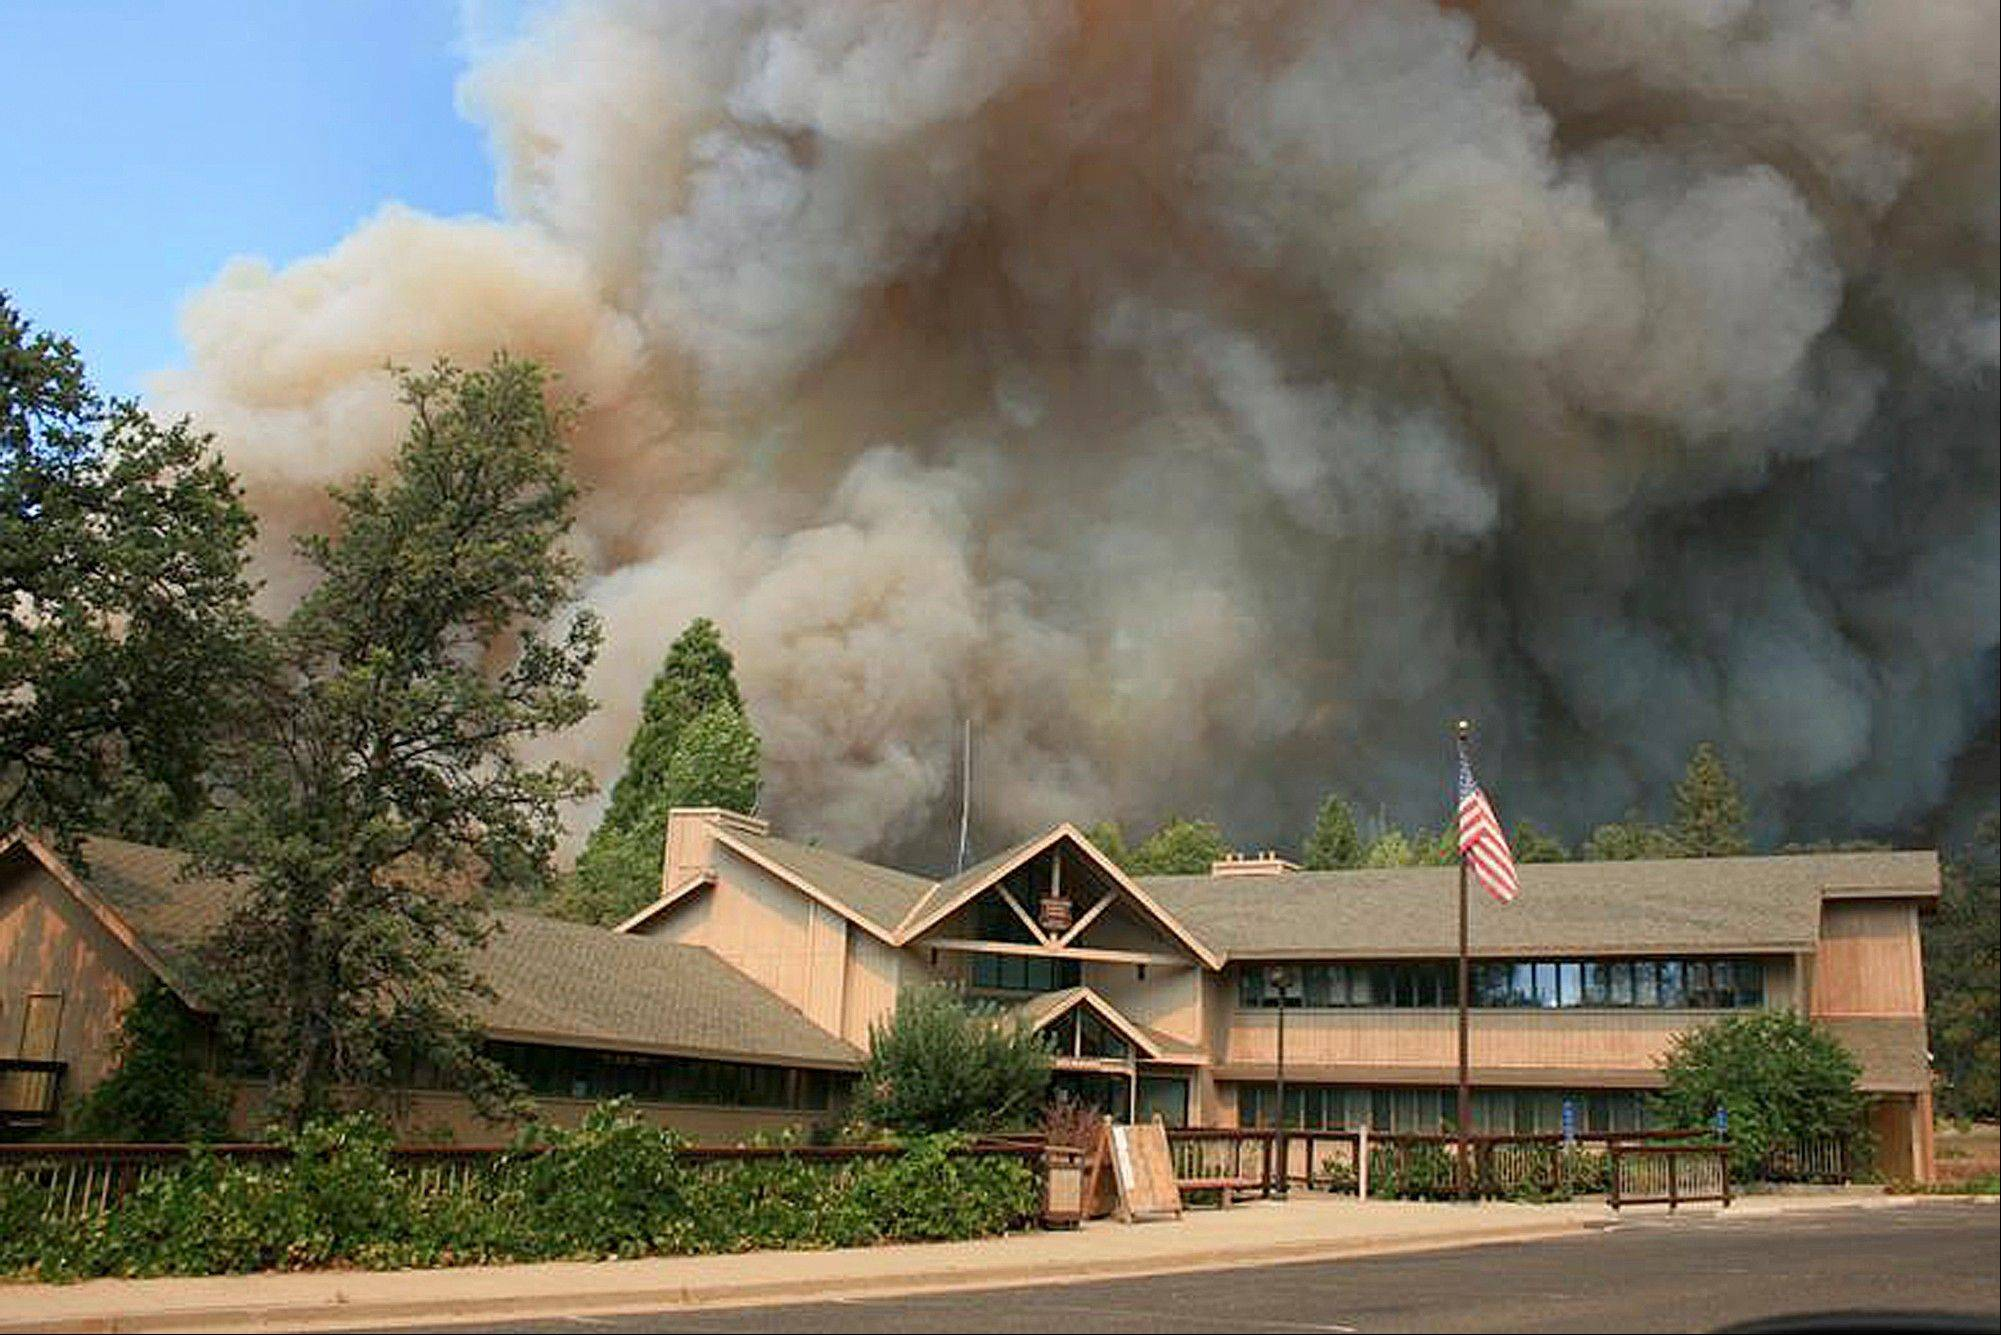 In this undated photo provided by the U.S. Forest Service, the Rim Fire burns near Groveland Ranger Station in Groveland, Calif. The wildfire outside Yosemite National Park � one of more than 50 major brush blazes burning across the western U.S. � more than tripled in size overnight and still threatens about 2,500 homes, hotels and camp buildings. Fire officials said the blaze burning in remote, steep terrain had grown to more than 84 square miles and was only 2 percent contained on Thursday, down from 5 percent a day earlier.